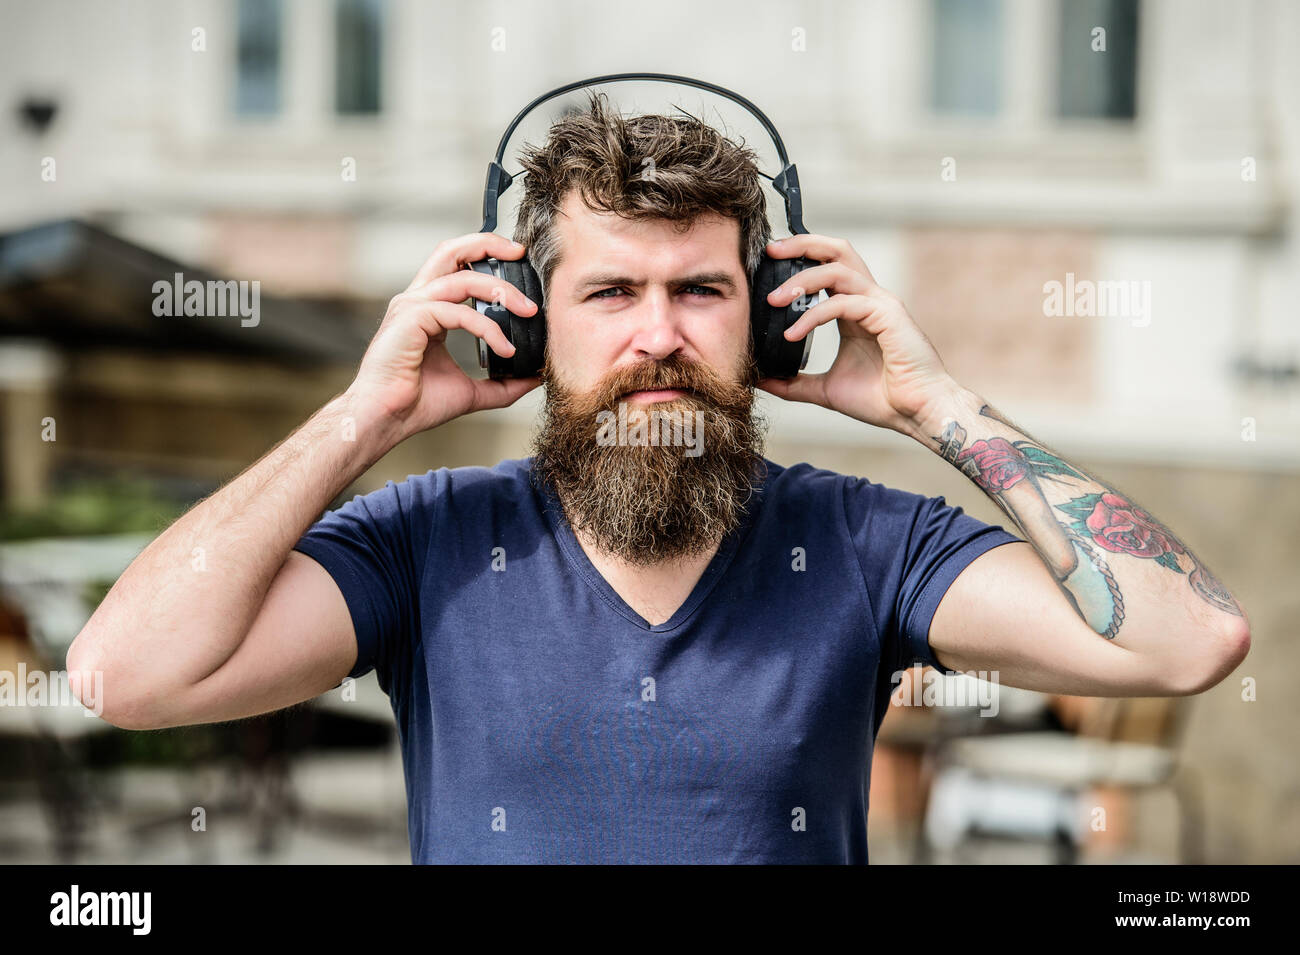 Im online. Soul music. Mature hipster with beard. Enjoying his favorite music. Time stops with nice music. Bearded man. brutal caucasian hipster with moustache. Young and brutal. - Stock Image